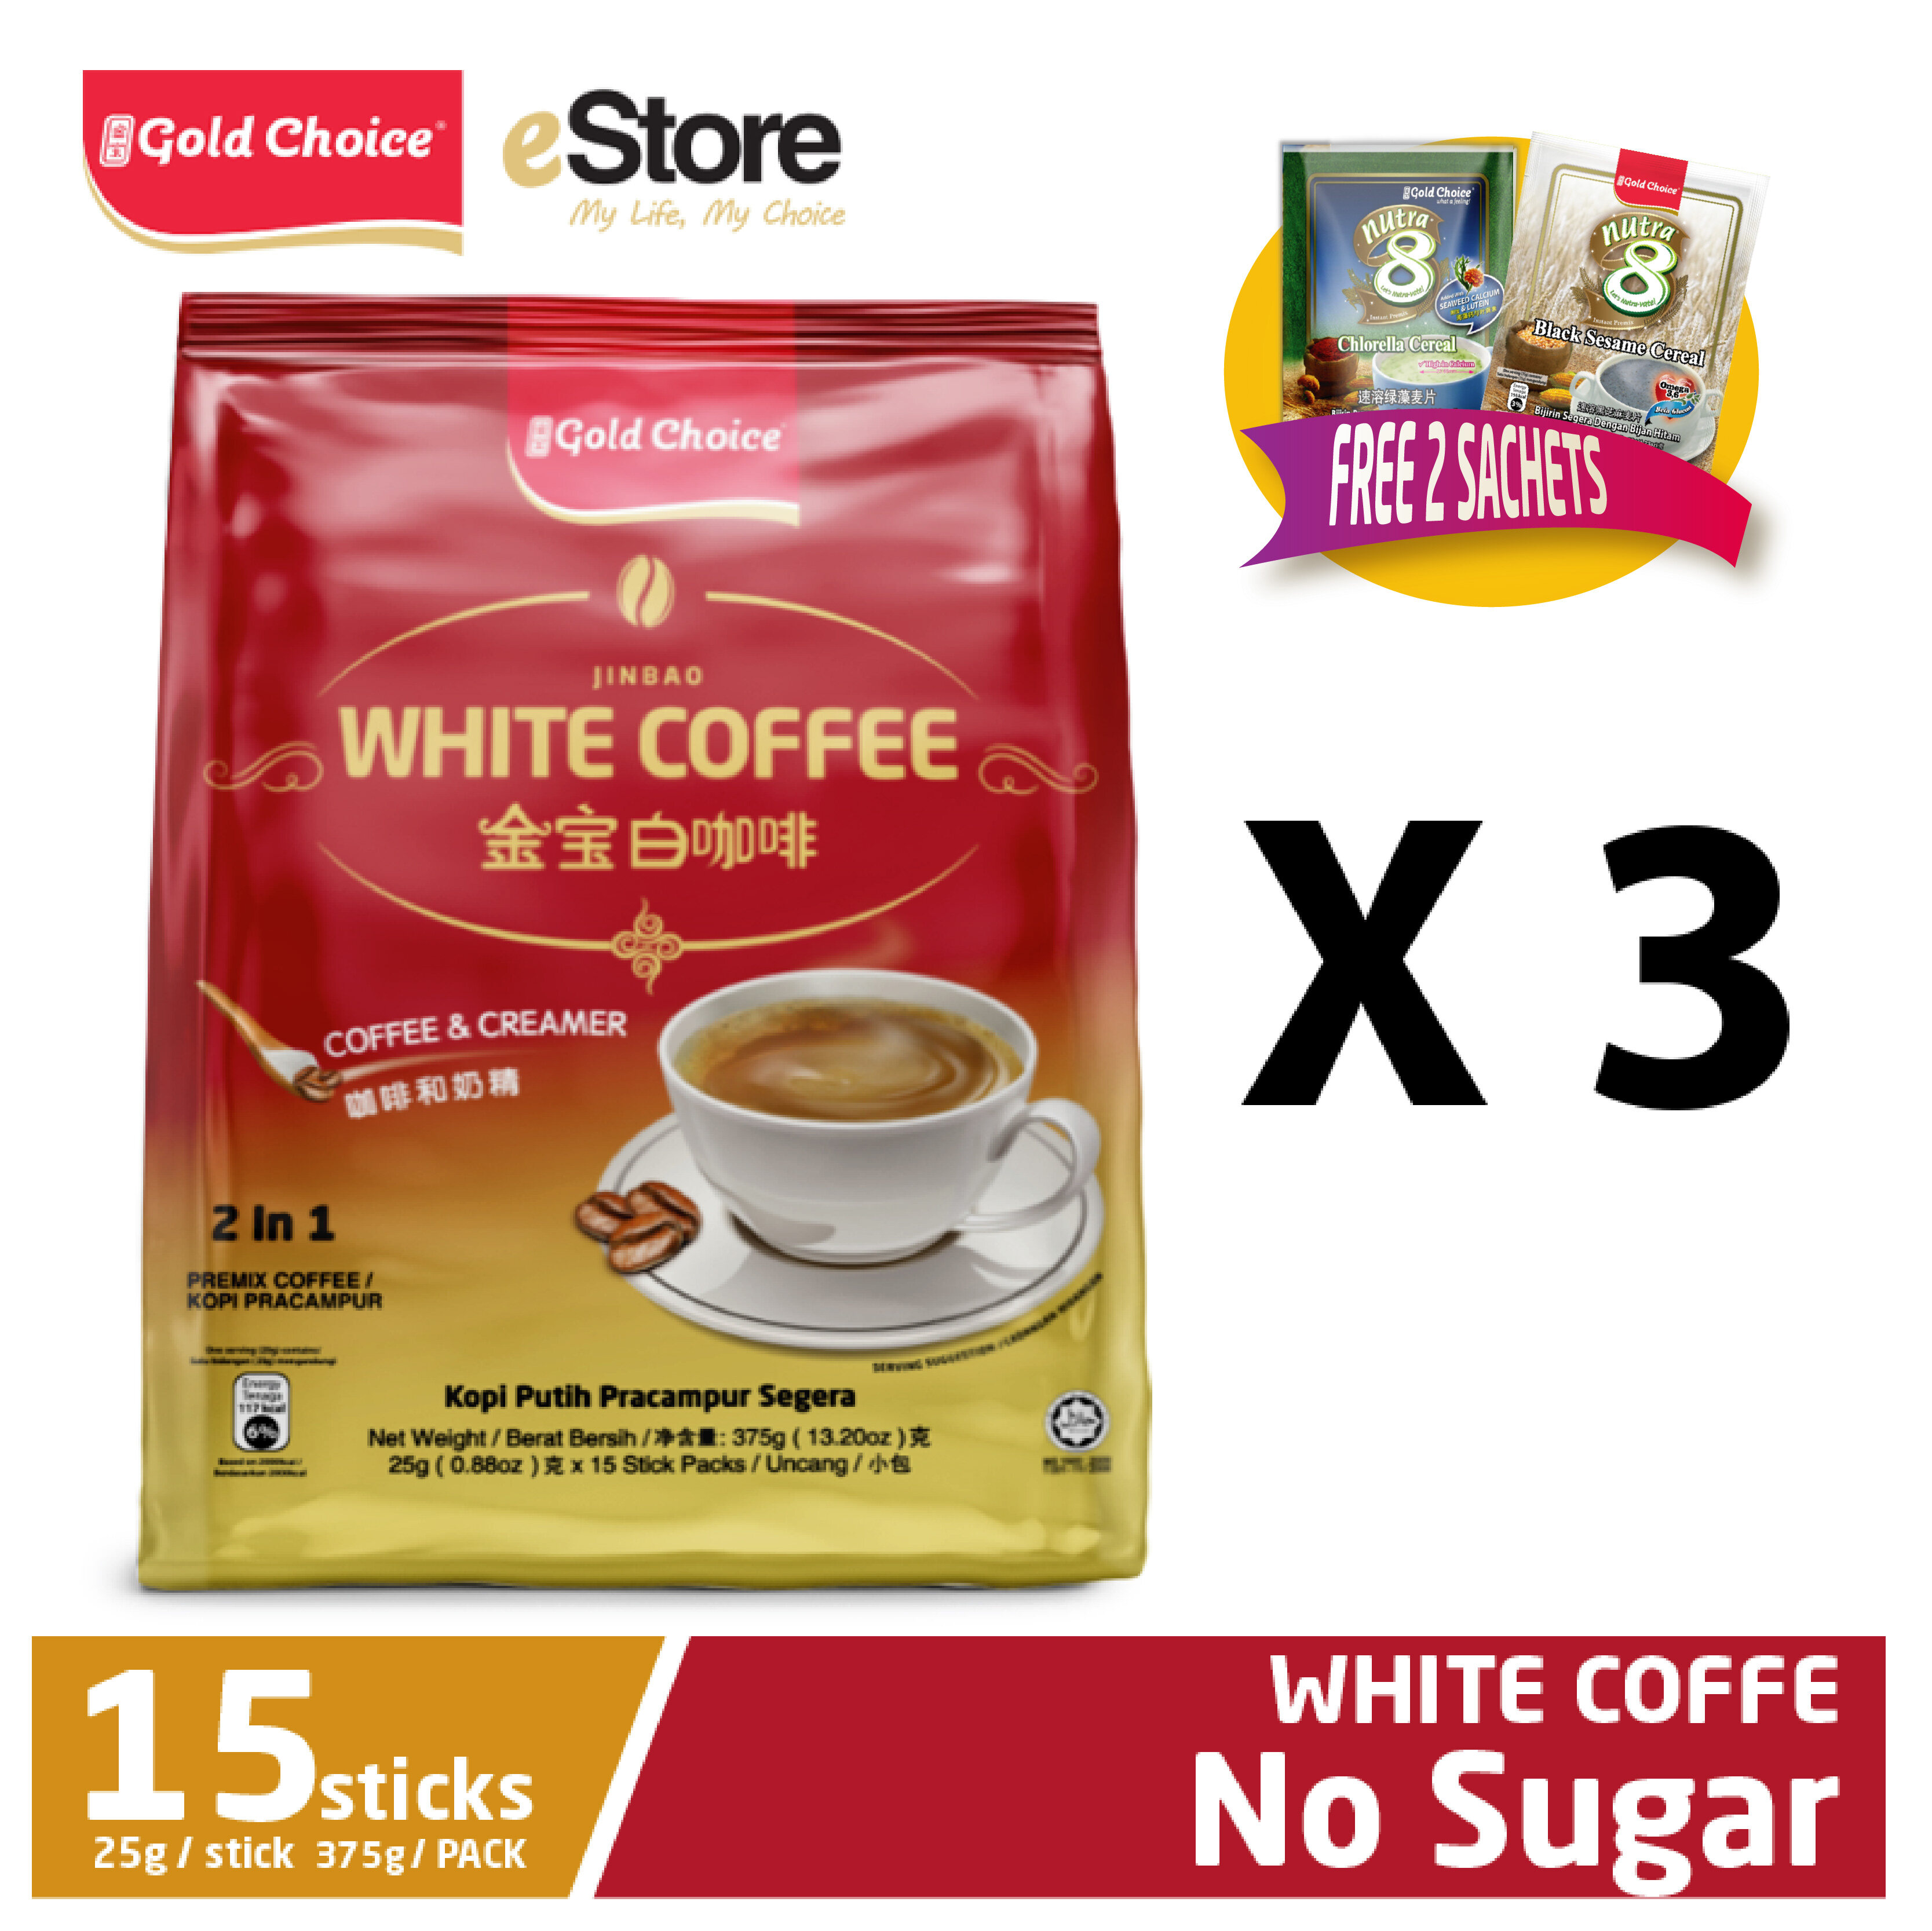 GOLD CHOICE JINBAO White Coffee Unsweetened - (25g X 15'S) X 3 Packs In Bundle [No Sugar] [2 FREE SACHETS PER PACK]